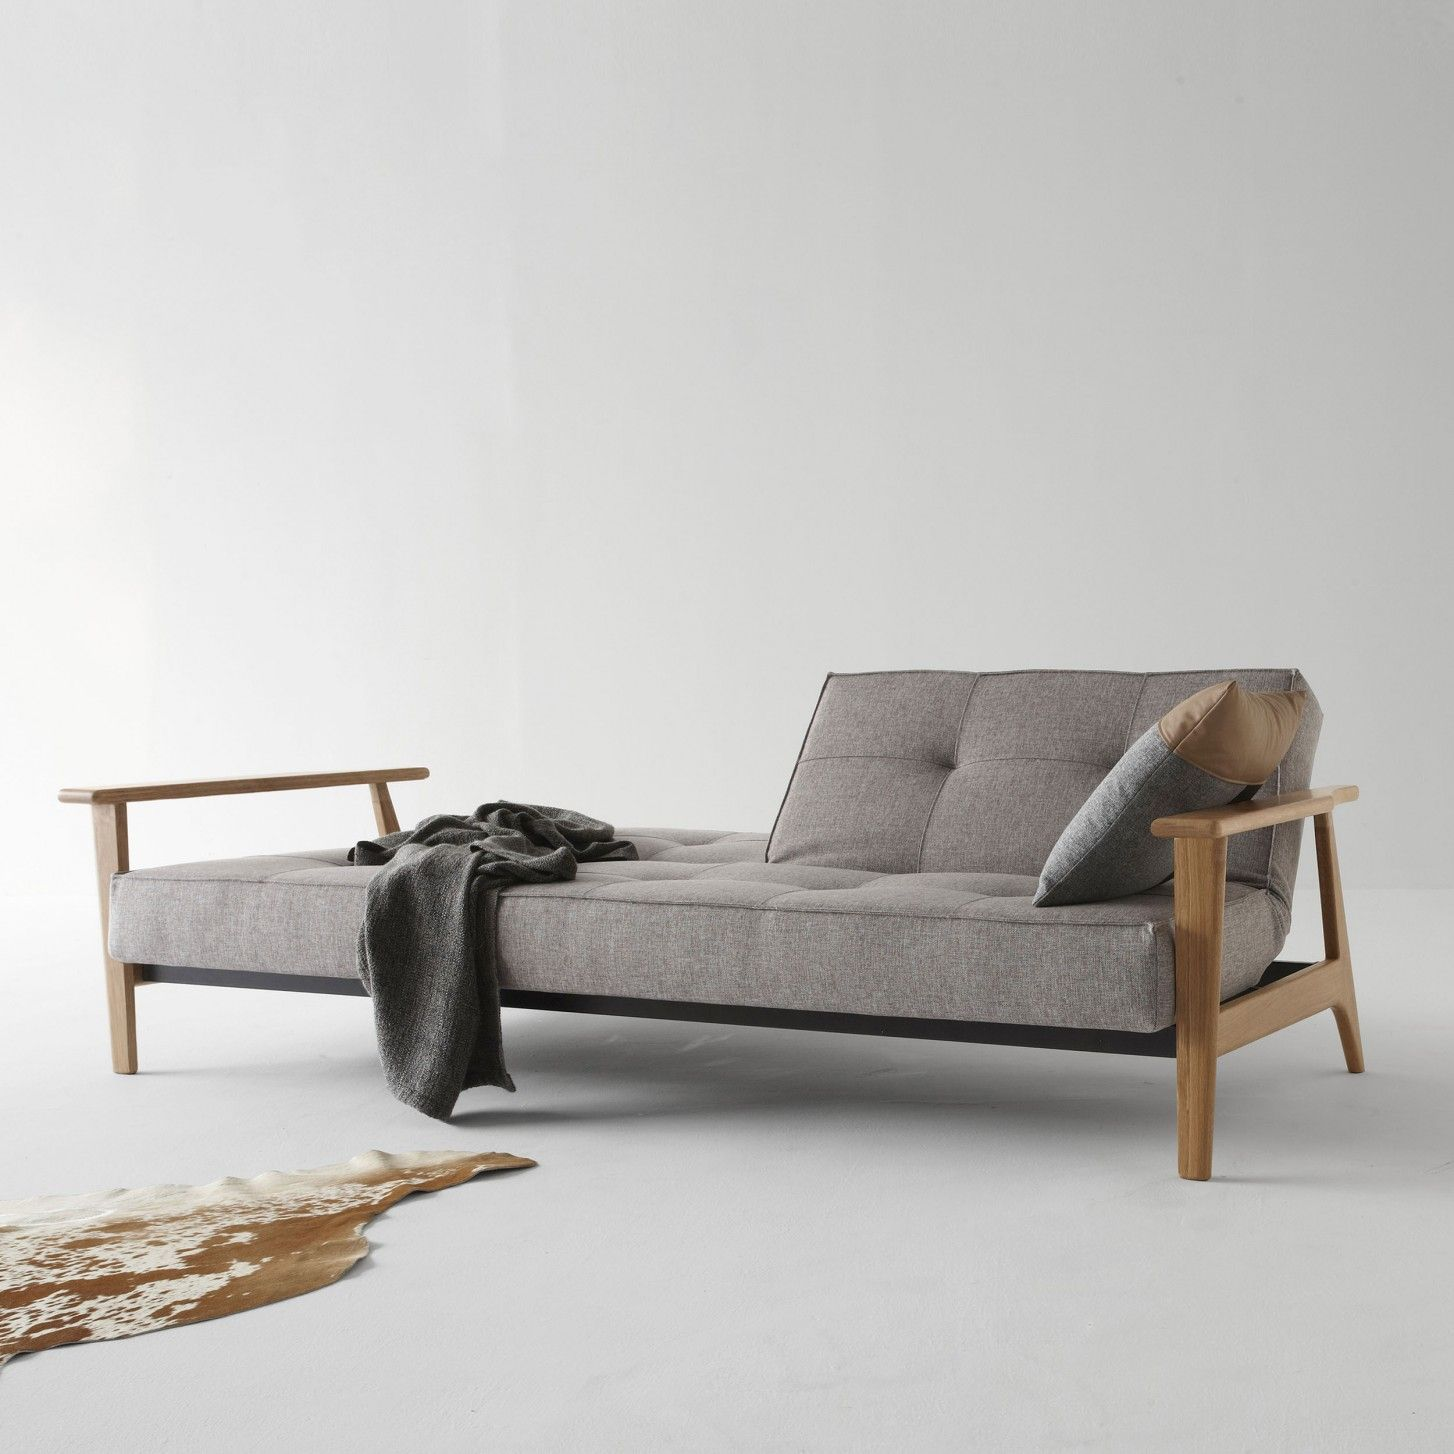 Frej 521 Klappsofa Von Innovation Randers Bei Ikarusde Design In